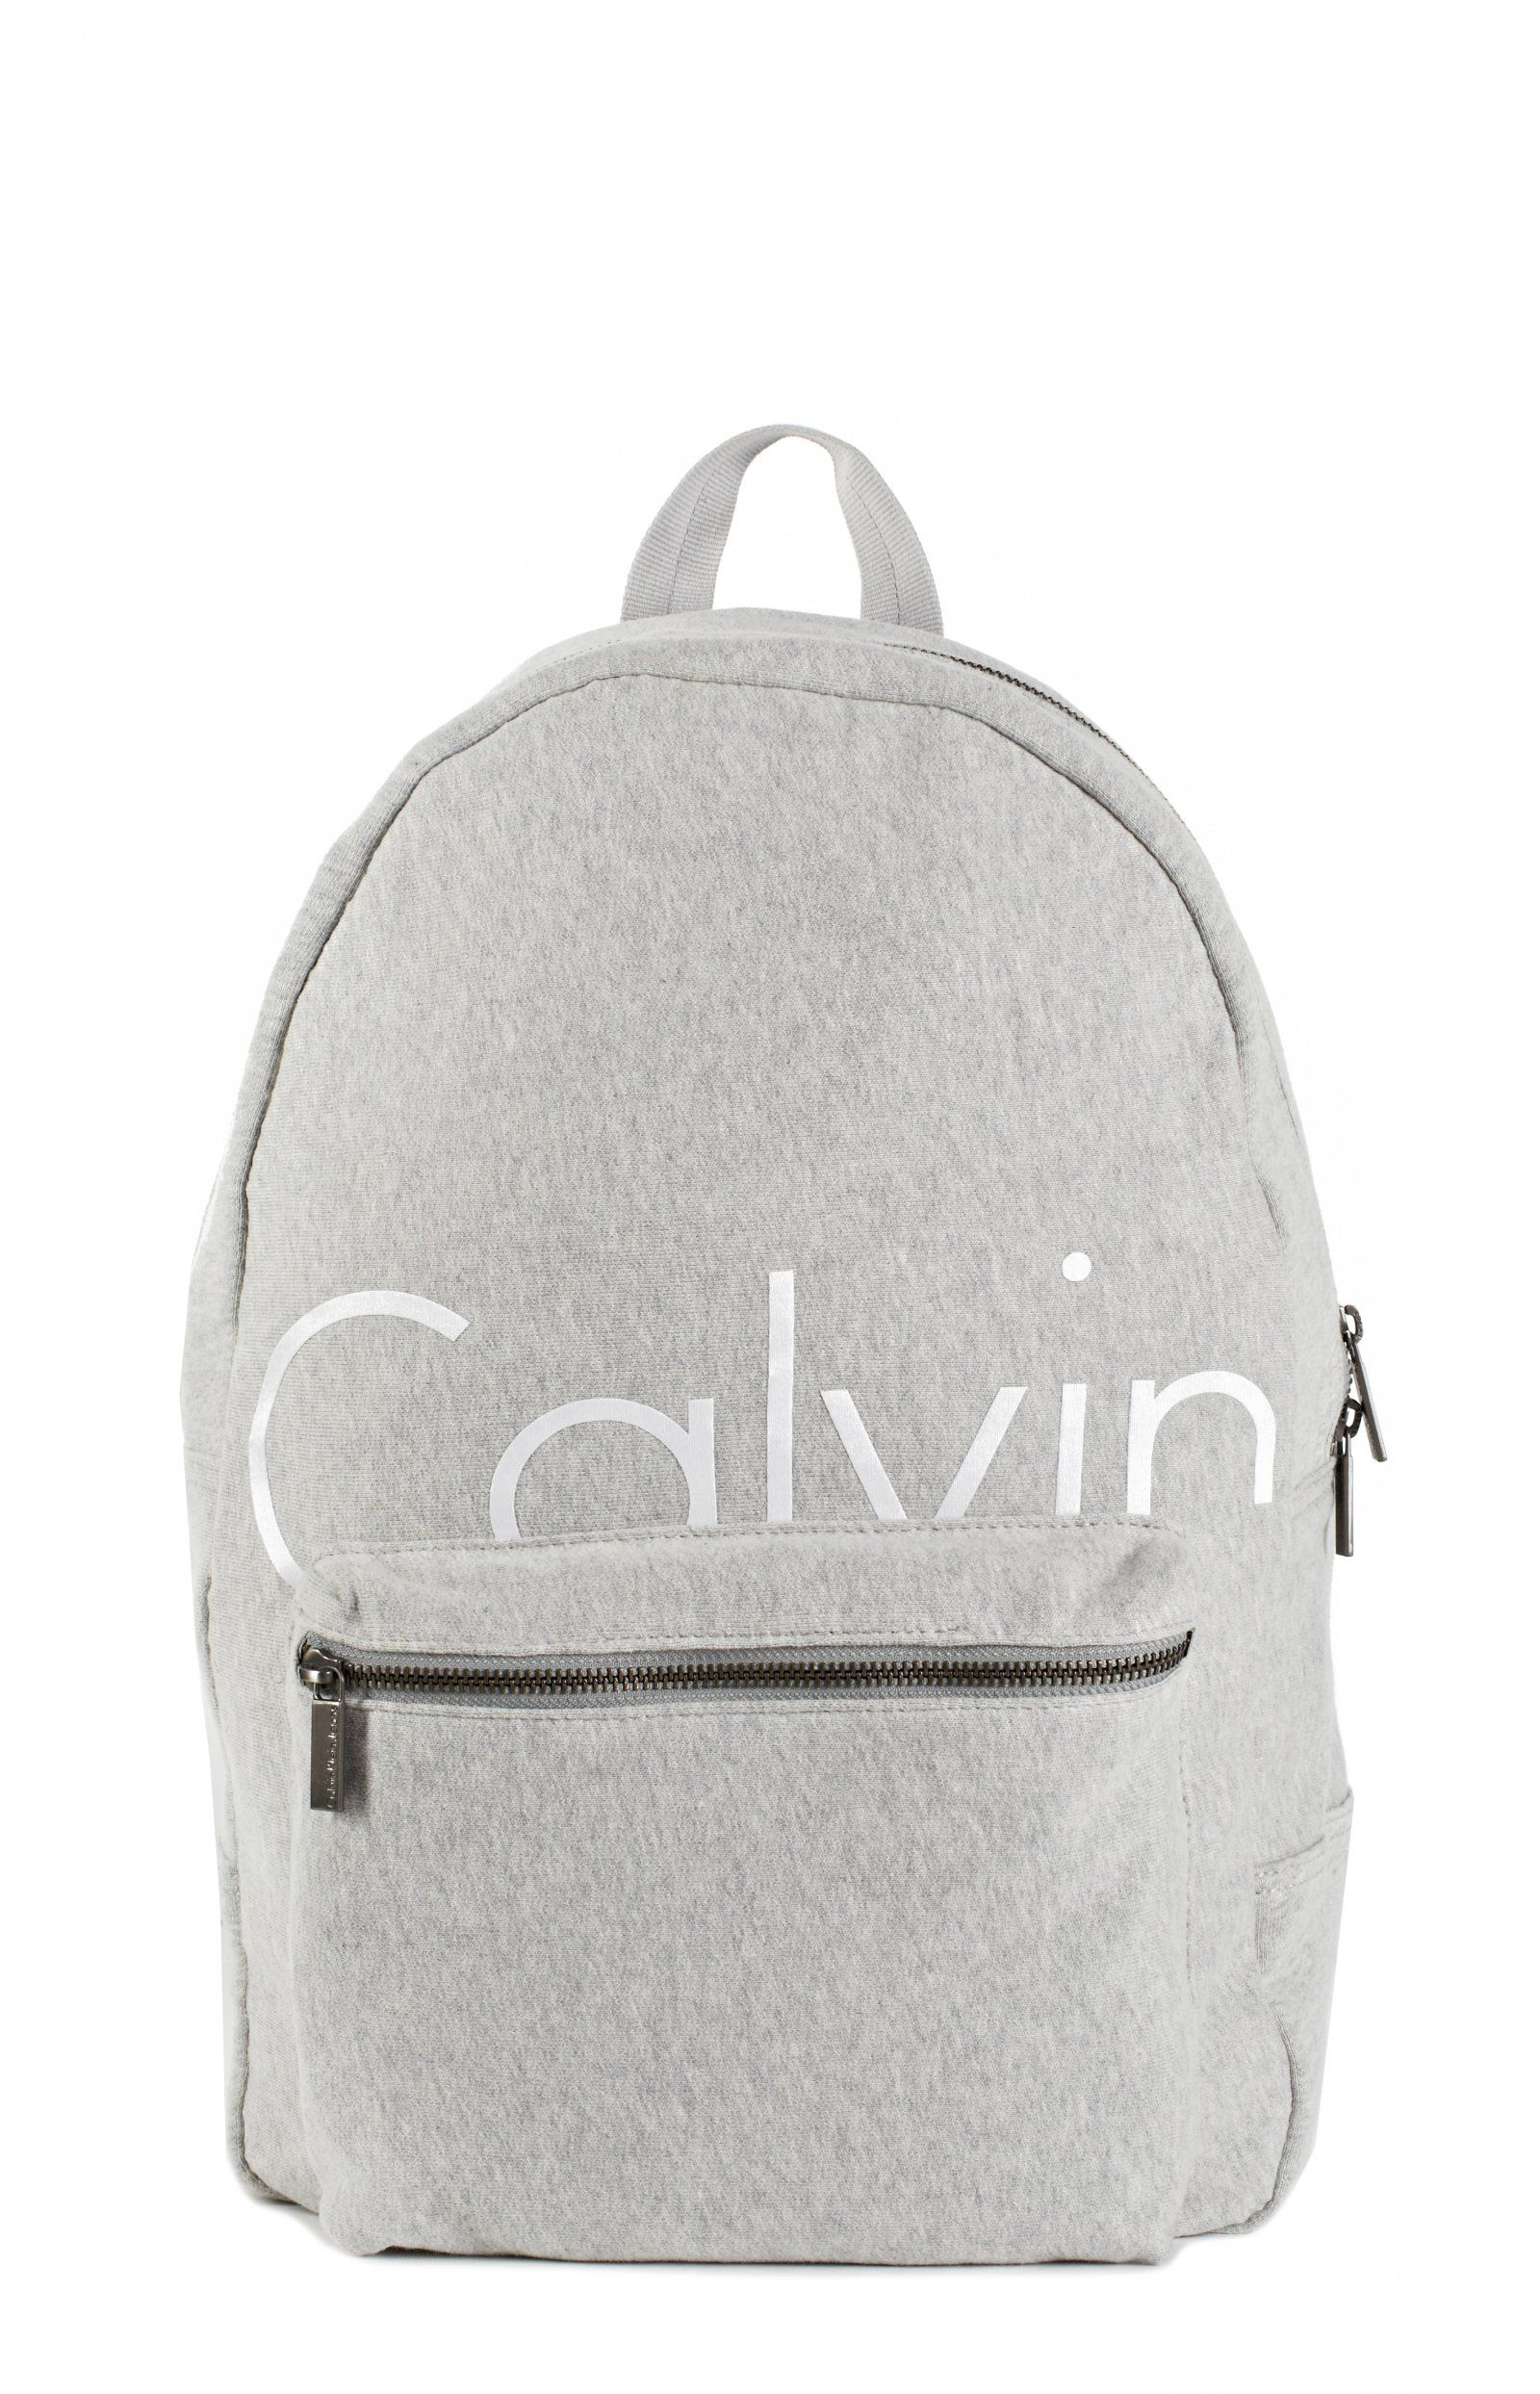 56e2700b893 Jersey  My Calvins  backpack -  MYCALVINS Collection - Calvin Klein Jeans -  ANITA HASS